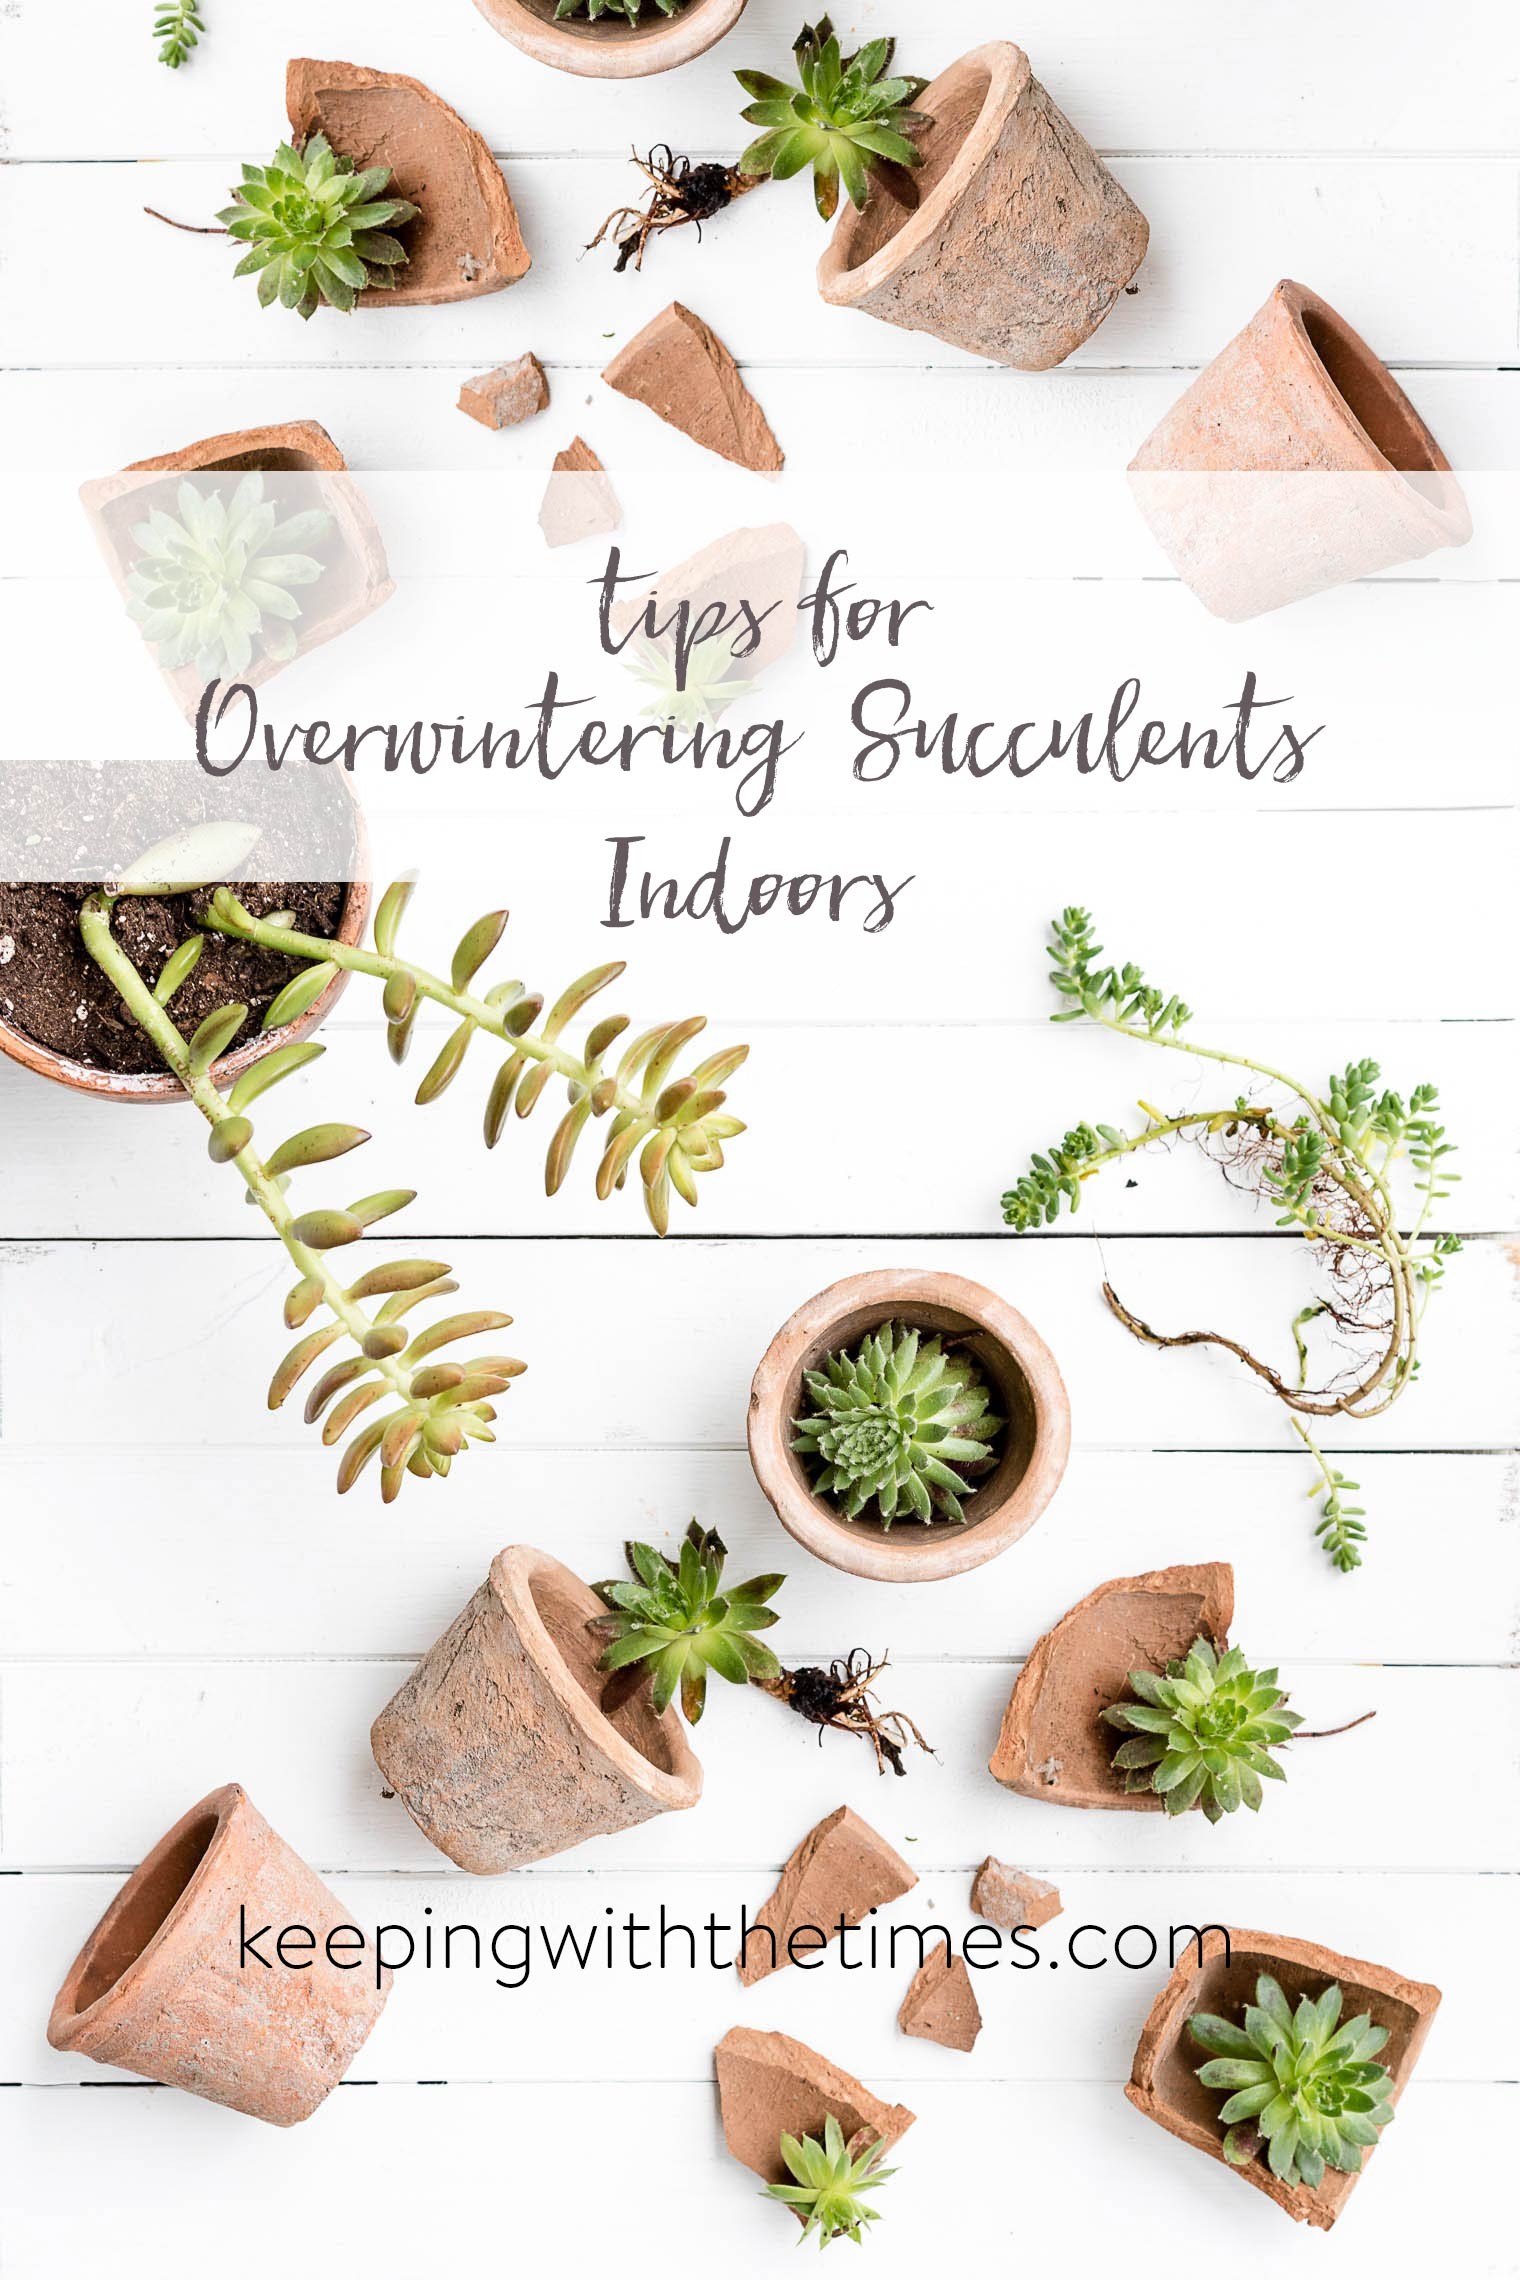 Overwintering Succulents Indoors, Keeping With the Times